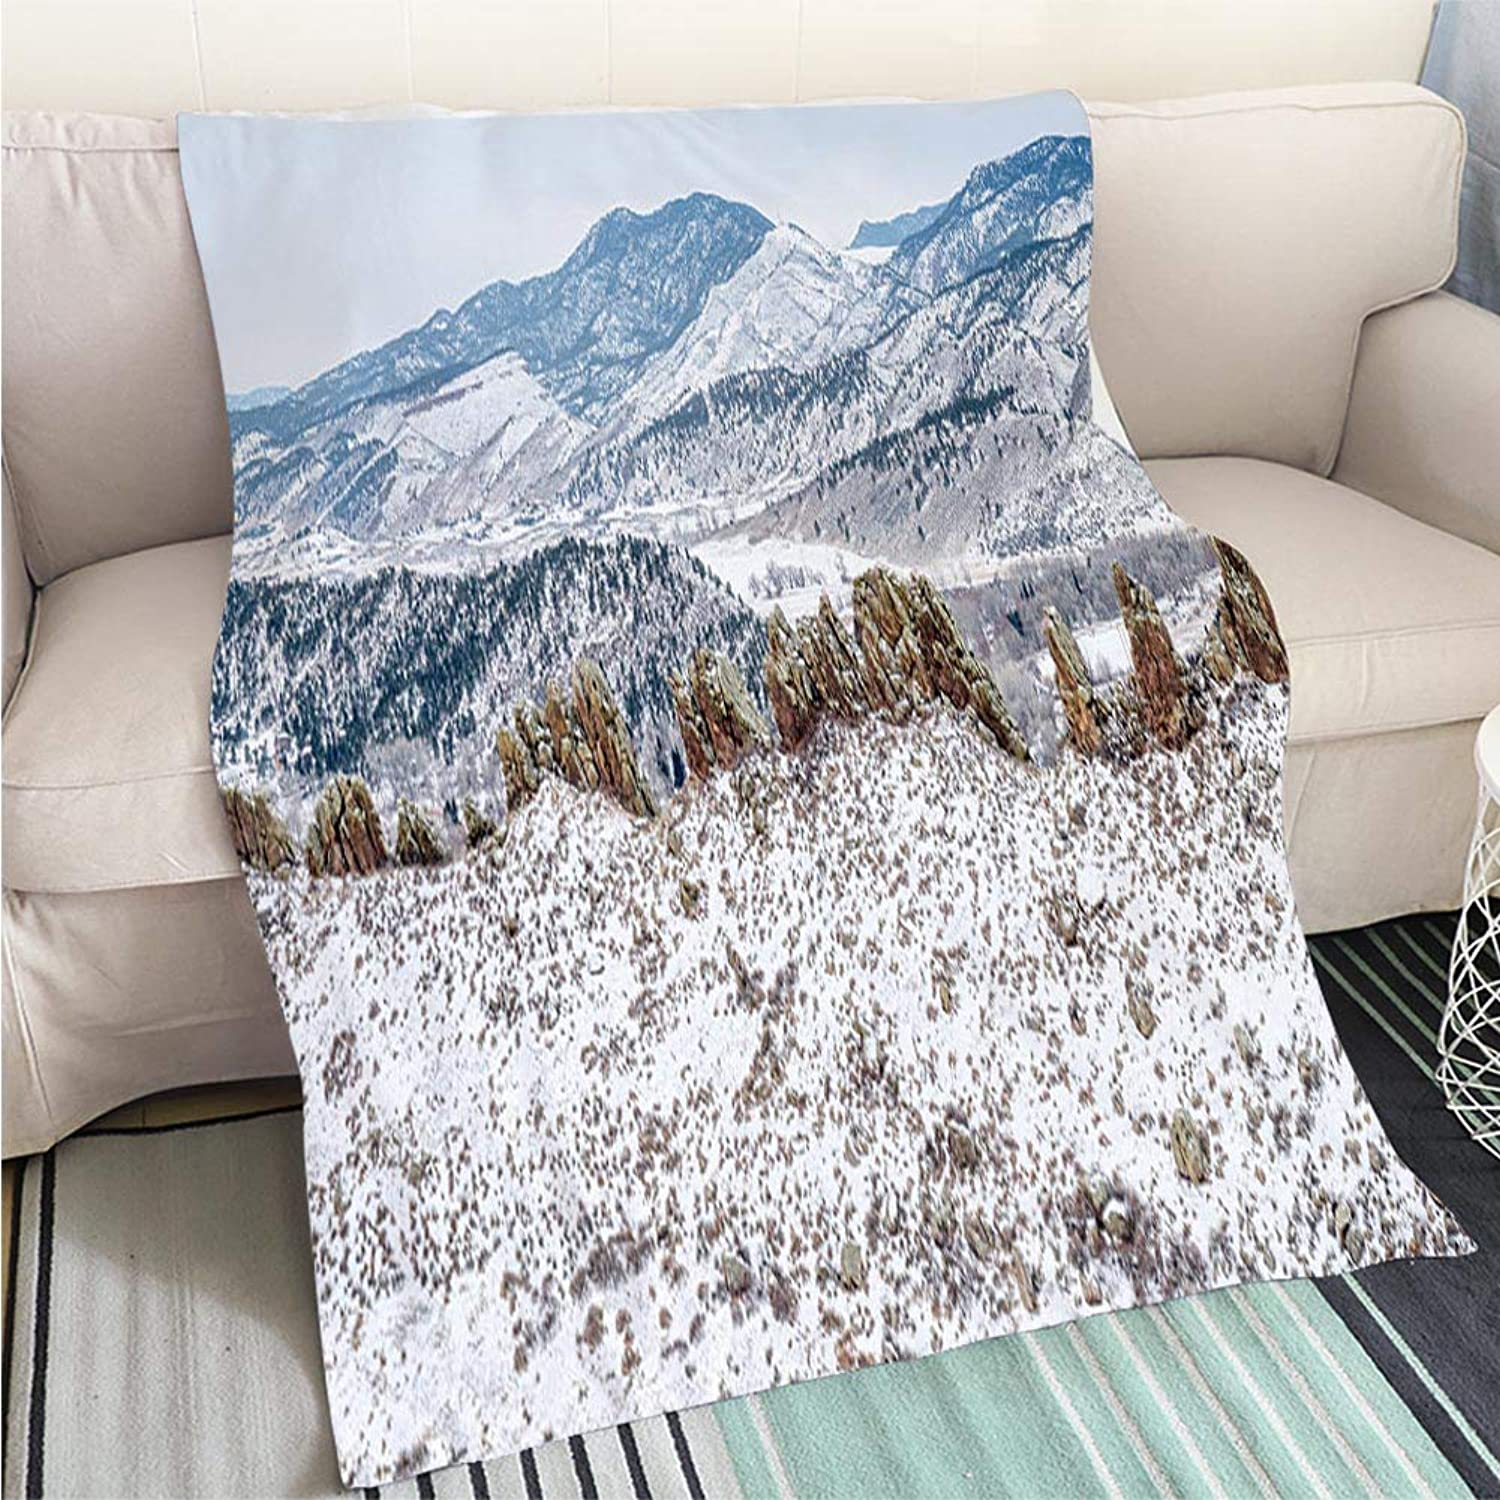 Luxury Super Soft Blanket Devils Backbone Panorama Perfect for Couch Sofa or Bed Cool Quilt